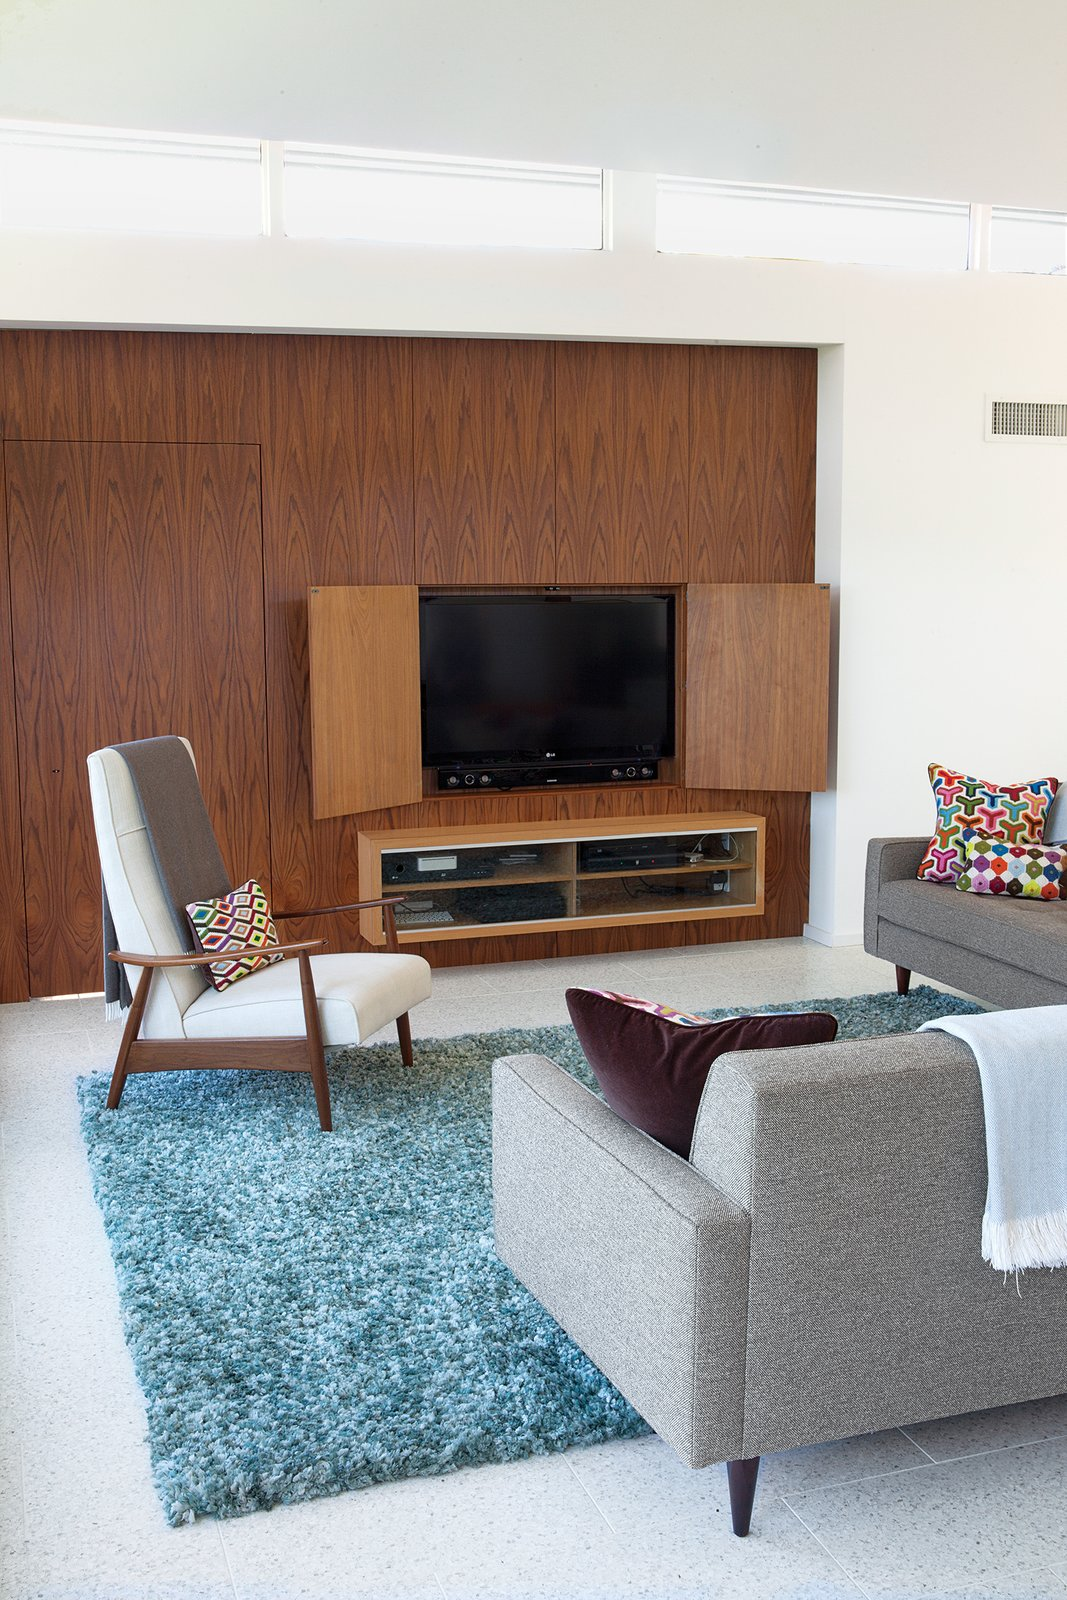 "Architect Cindy Black chose terrazzo tile flooring by Concrete Collaborative over higher-priced competitors because it's a ""little more polished looking"". Before installing the material, the builder had to completely re-level the concrete subfloor, which had settled over time leaving a two-inch gap on one side. The sofa is from Room & Board, and the custom walnut media wall was designed to match the kitchen built-ins. Tagged: Living Room, Concrete Floor, Sofa, and Rug Floor.  Photo 11 of 11 in A Renovated Midcentury Gem in Austin"